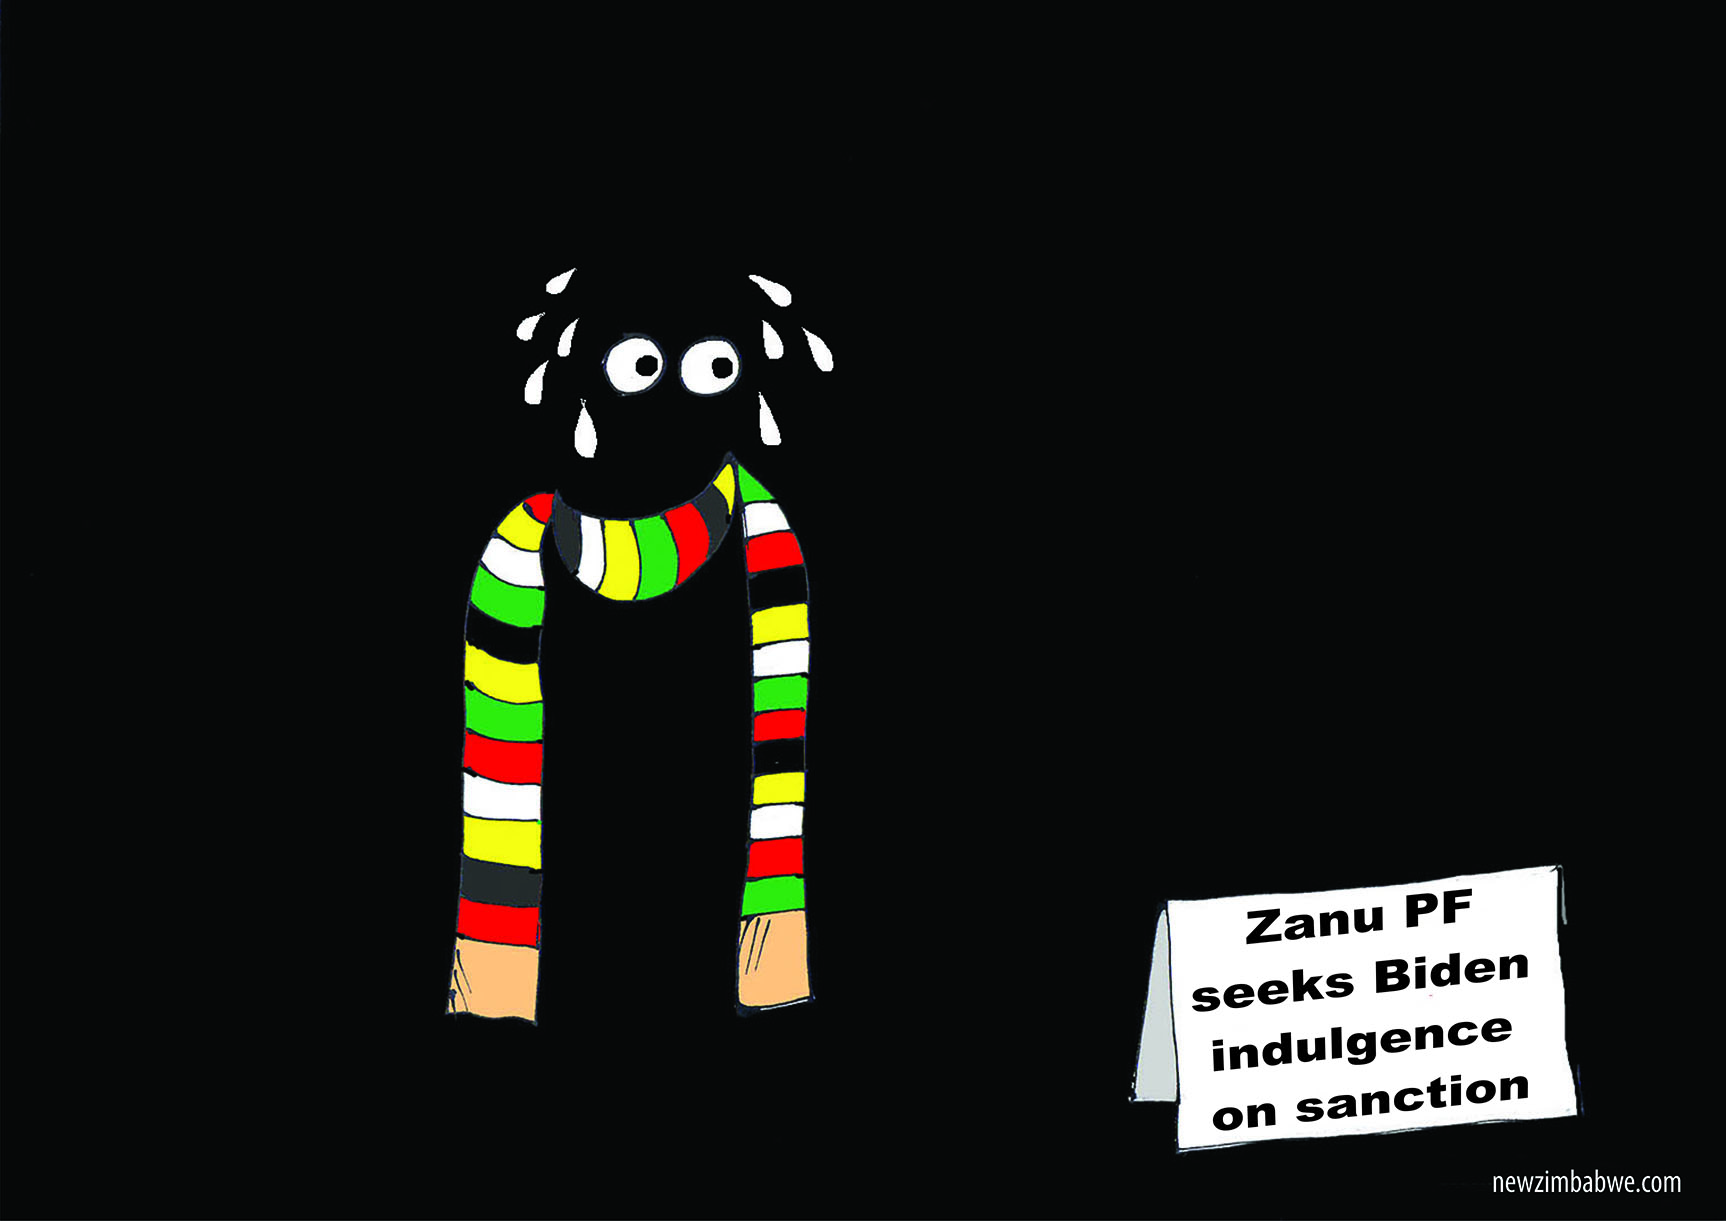 Of Zanu PF, Biden and sanctions